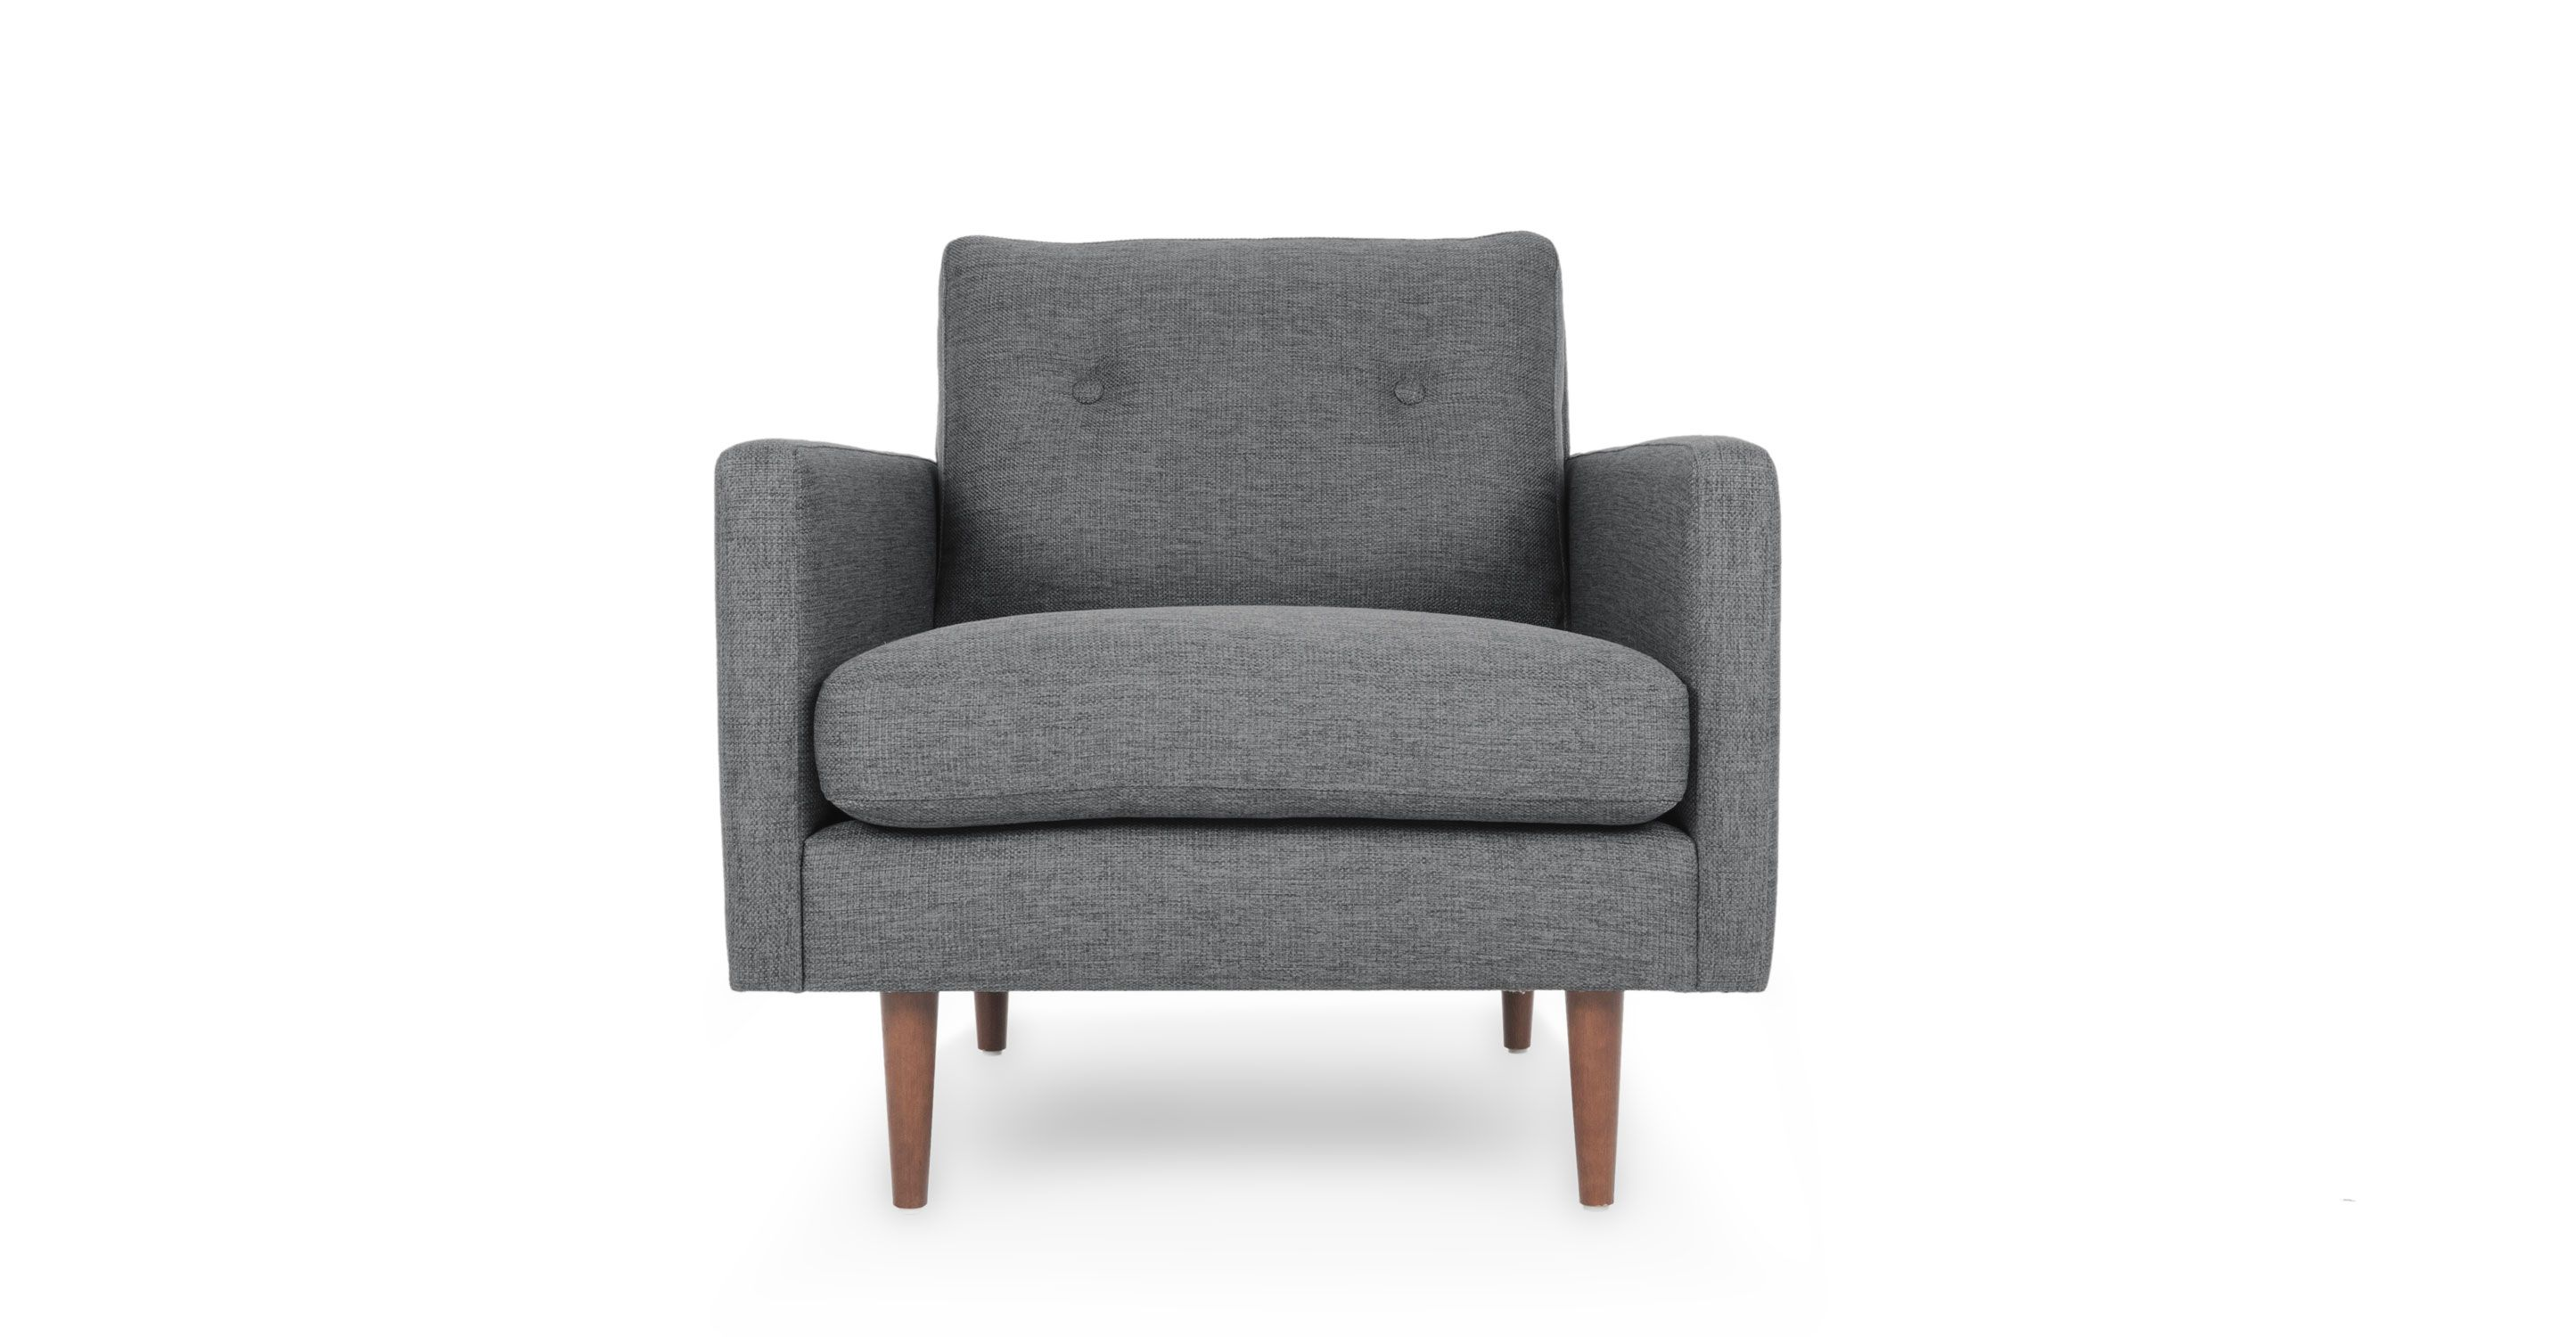 Noah Interieur Gray Armchair With Solid Wood Legs Article Noah Modern Furniture